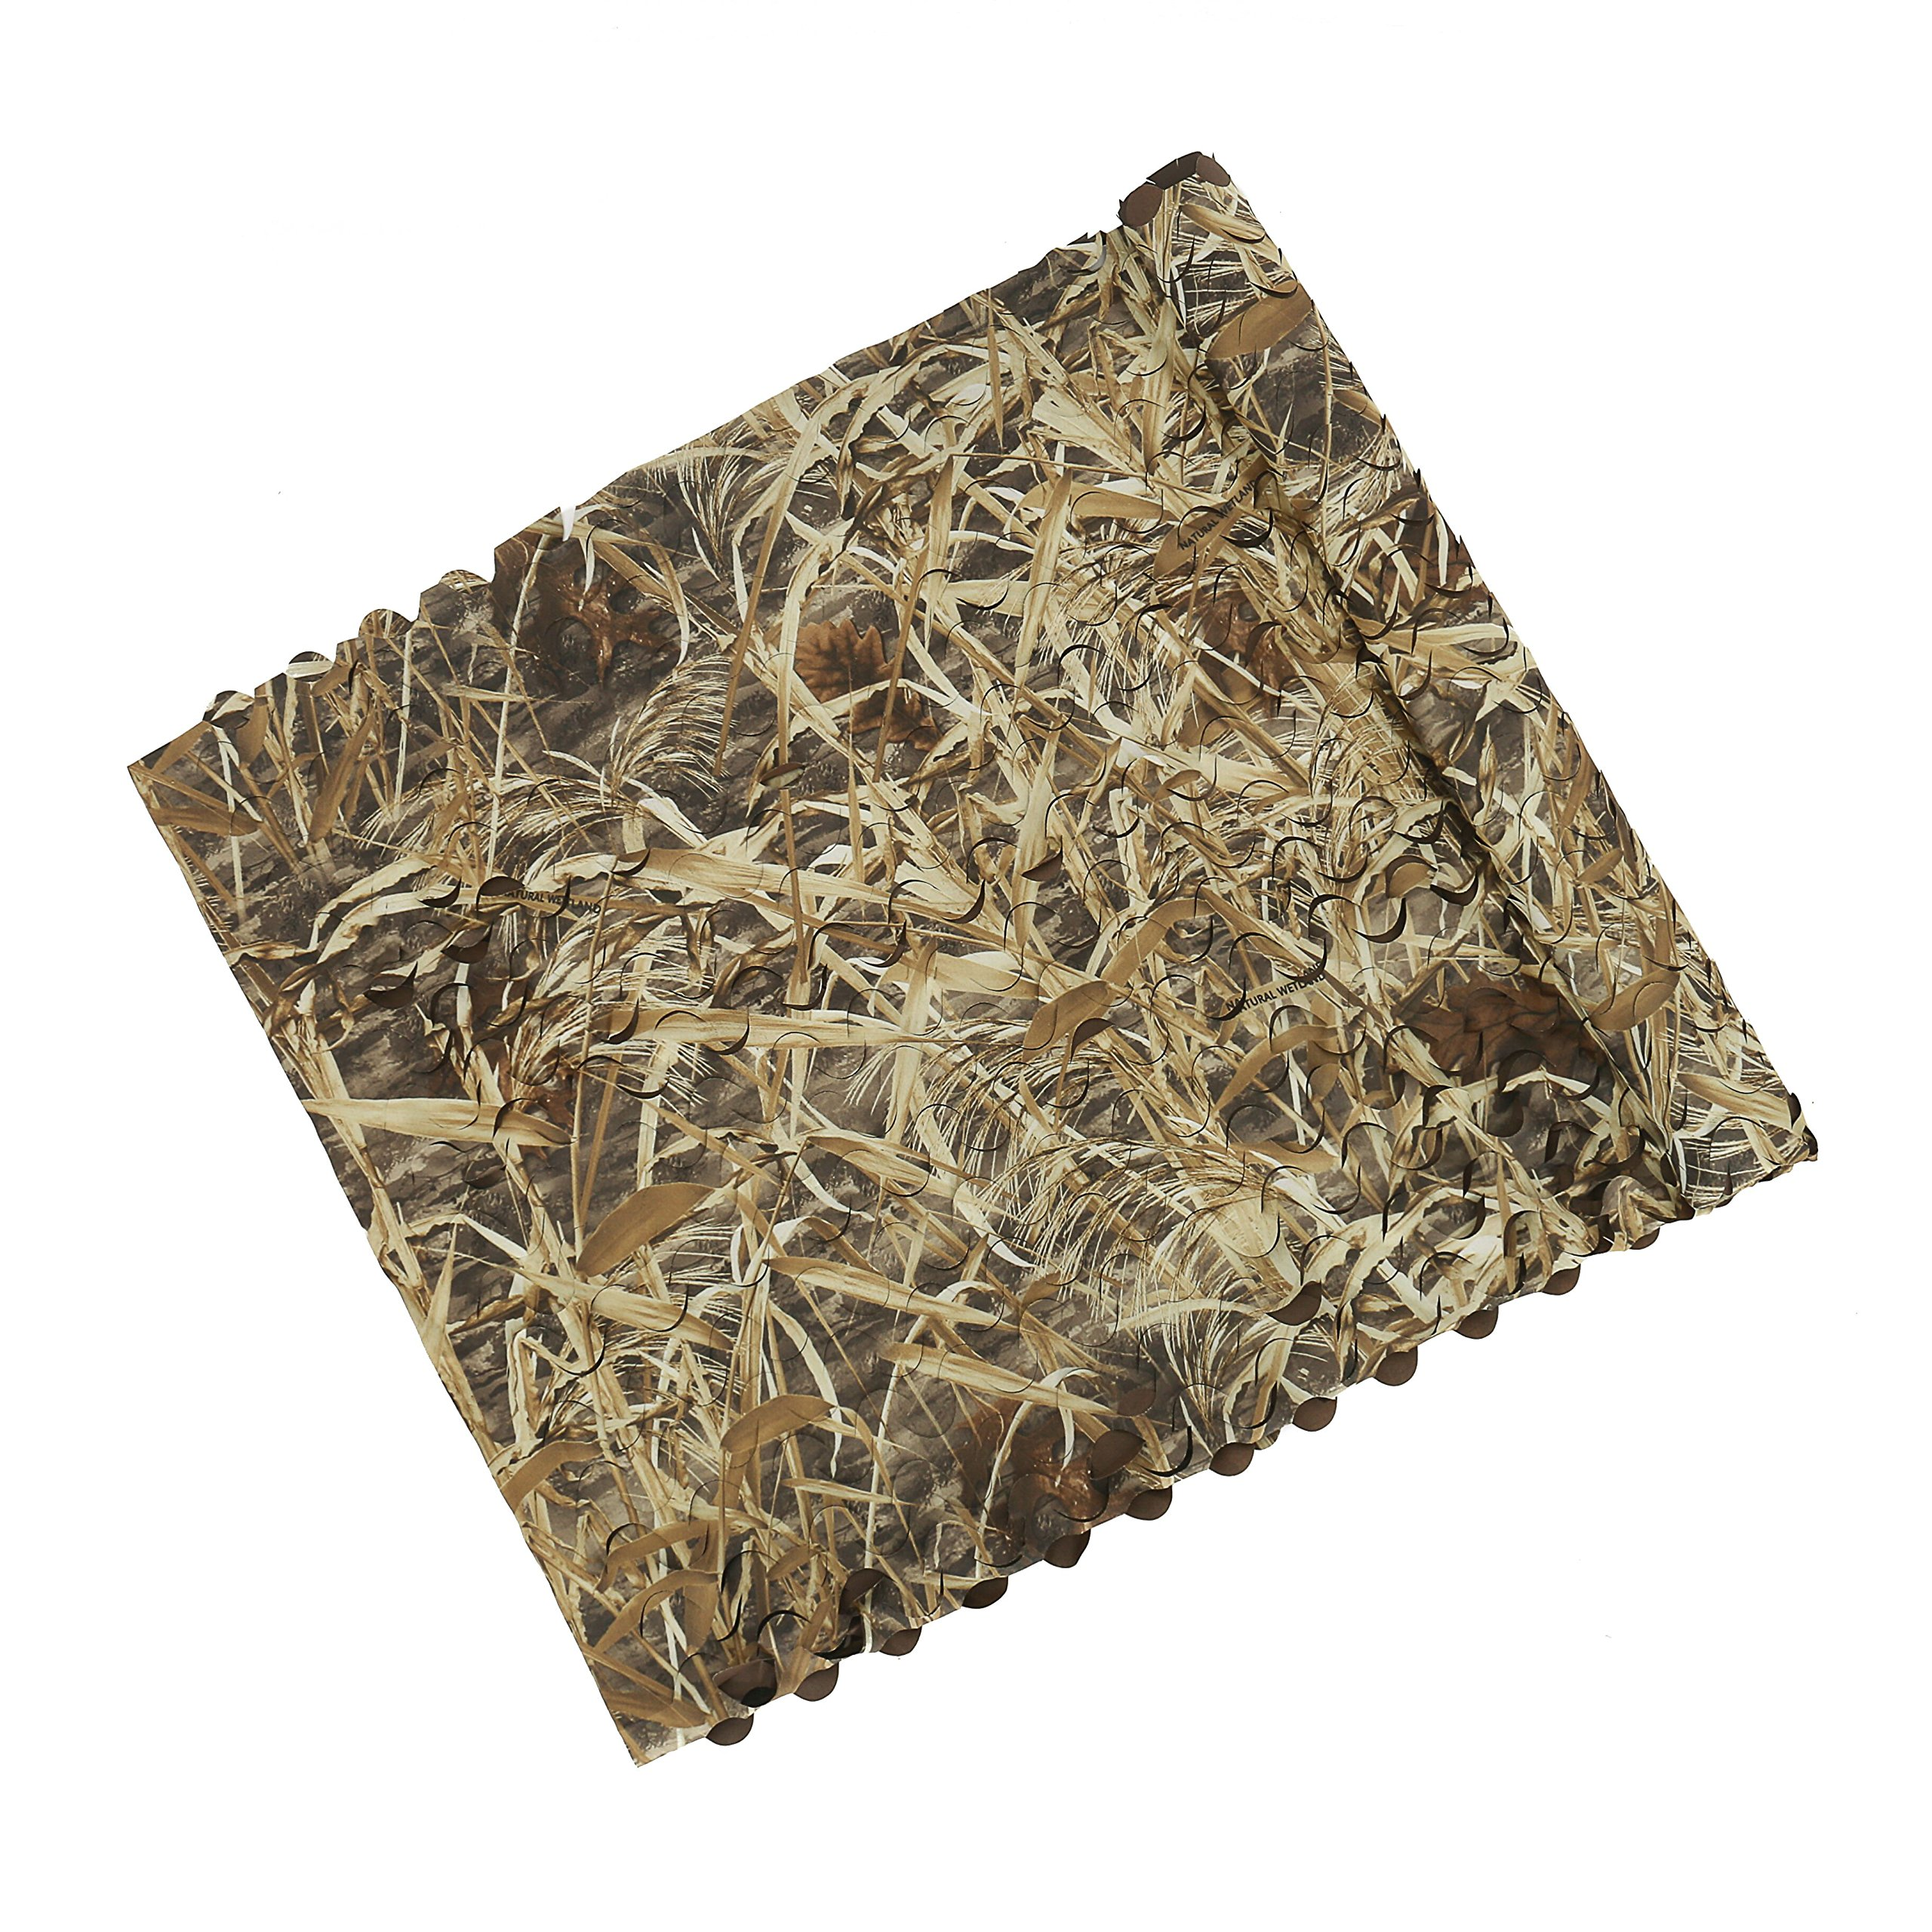 Auscamotek Duck Blind Material Camo Netting for Waterfowl Hunting Boat Camouflage Nets Dry Grass Pattern 5ft×13ft by Auscamotek